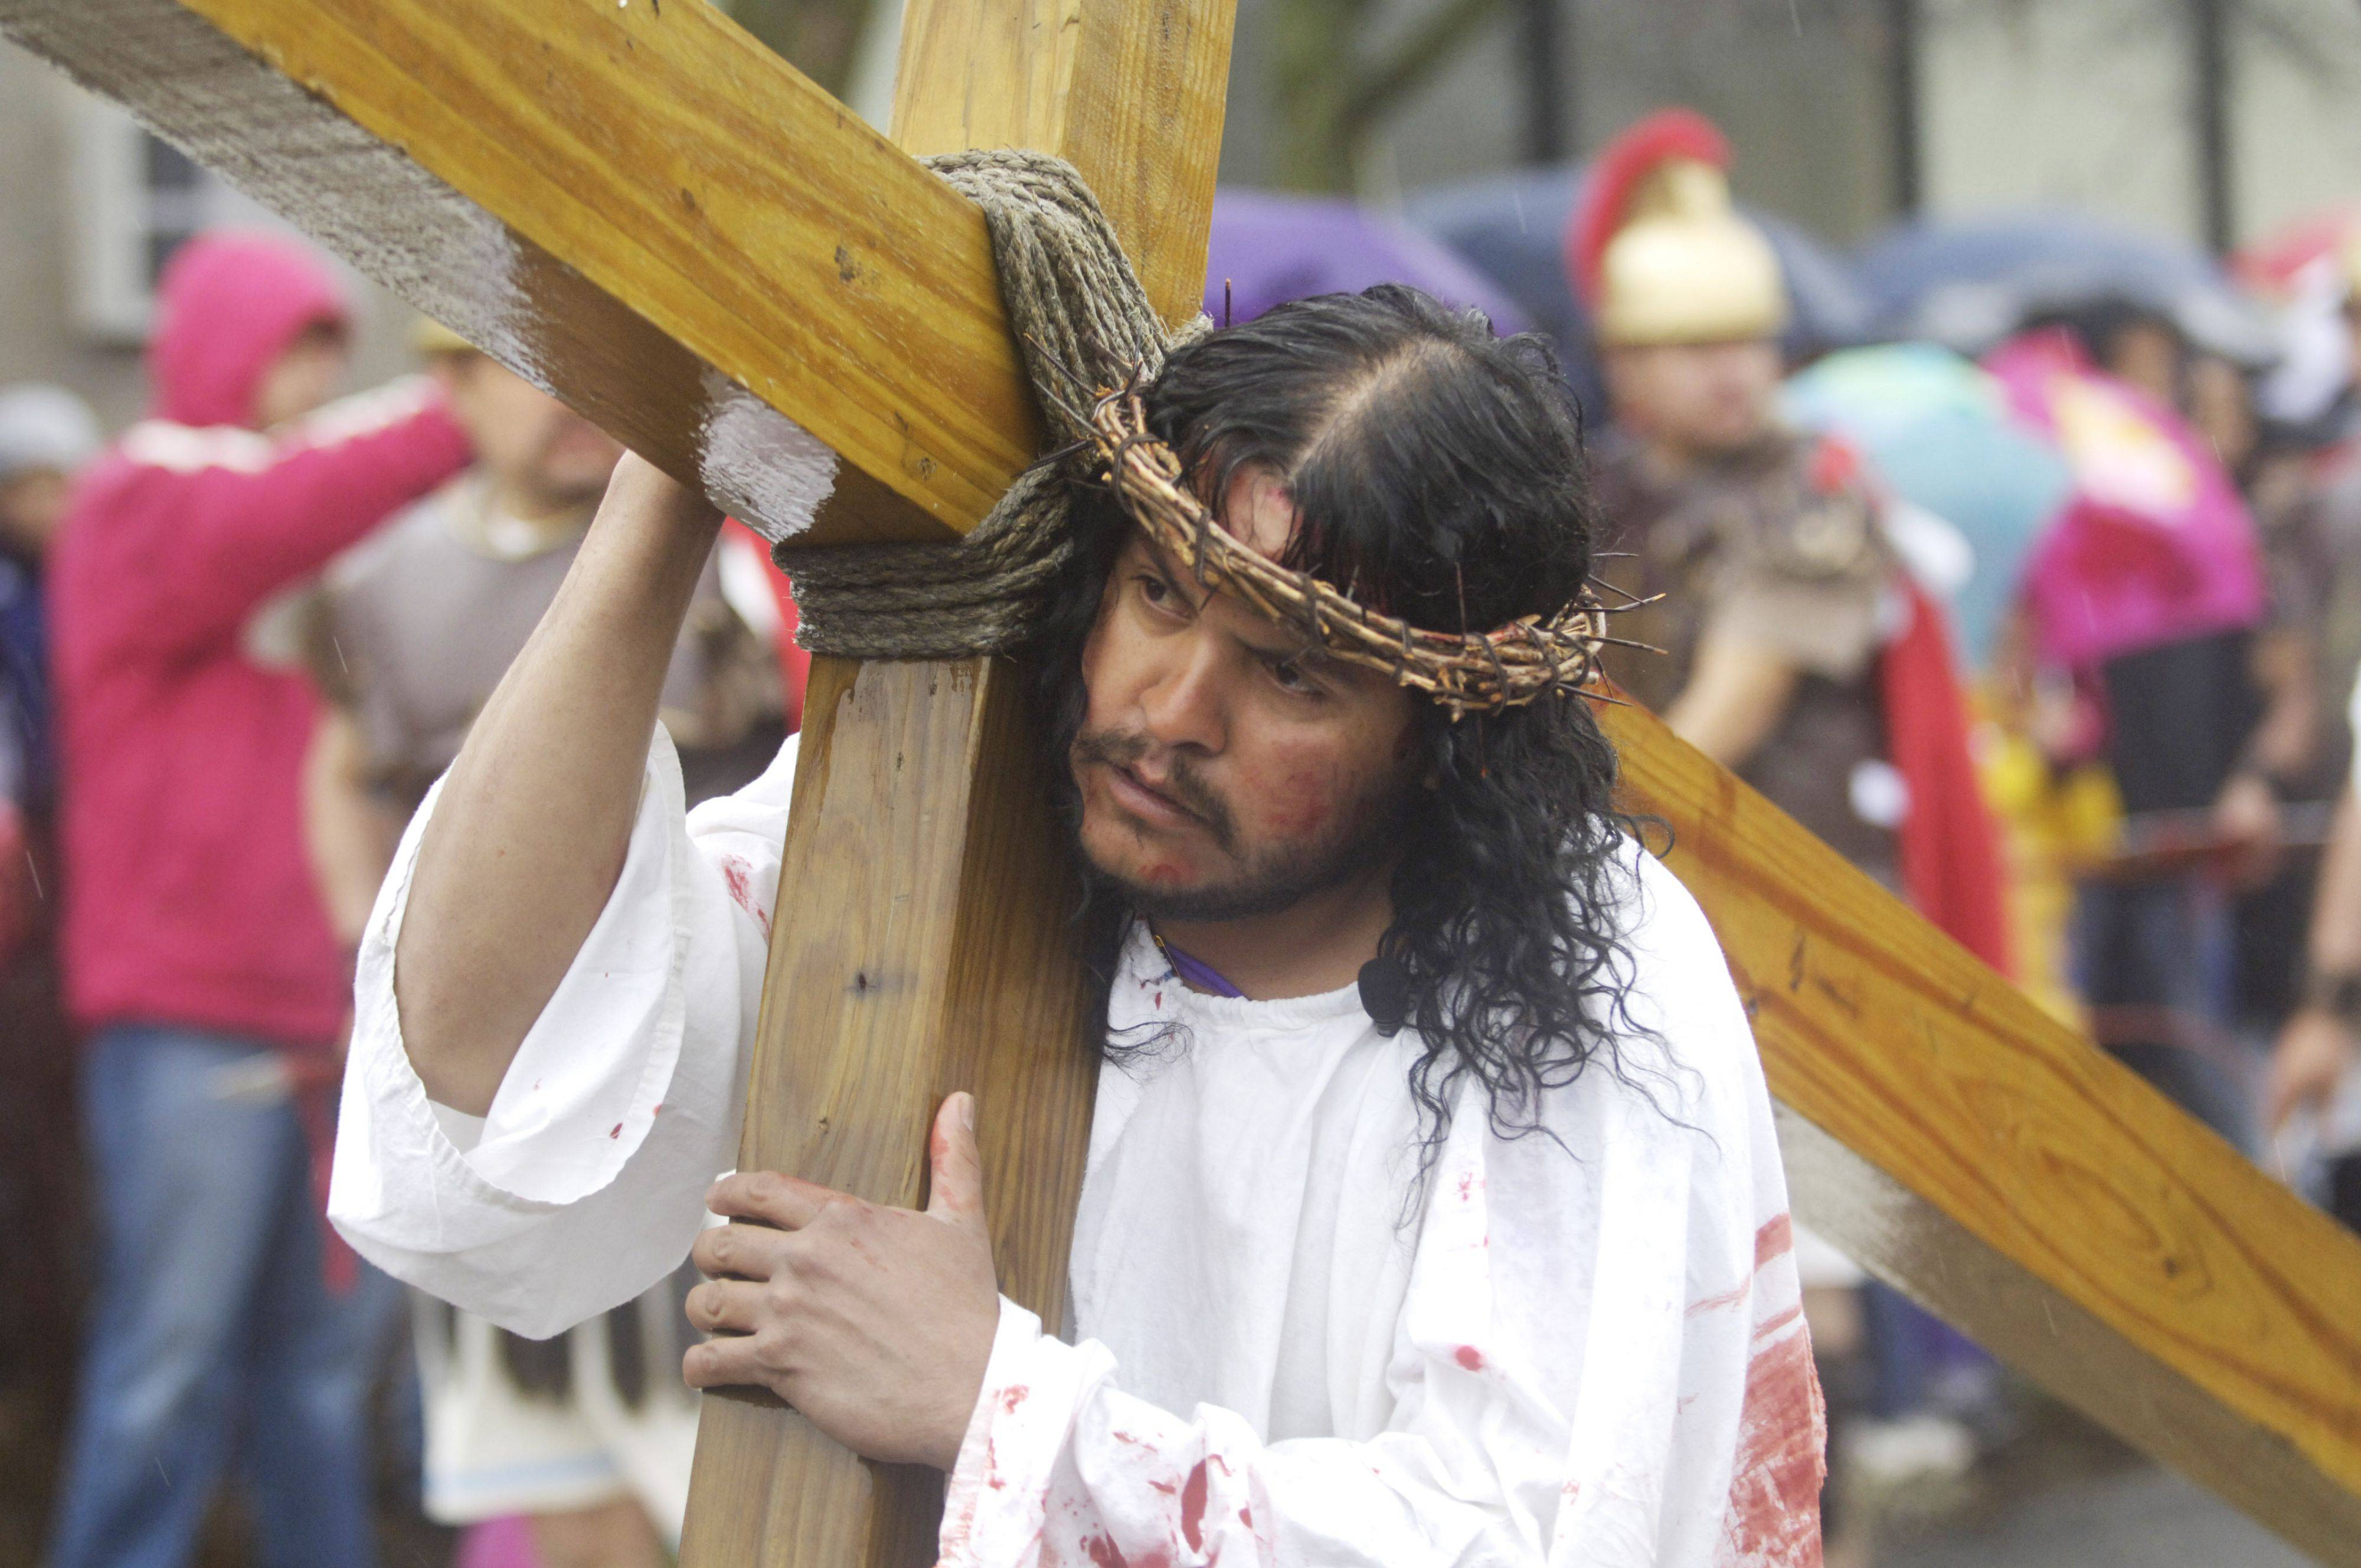 Jesus, played by Omar Parma, carries his cross during the Good Friday procession from St. Thomas Church to Mission San Juan Diego in Arlington Heights.